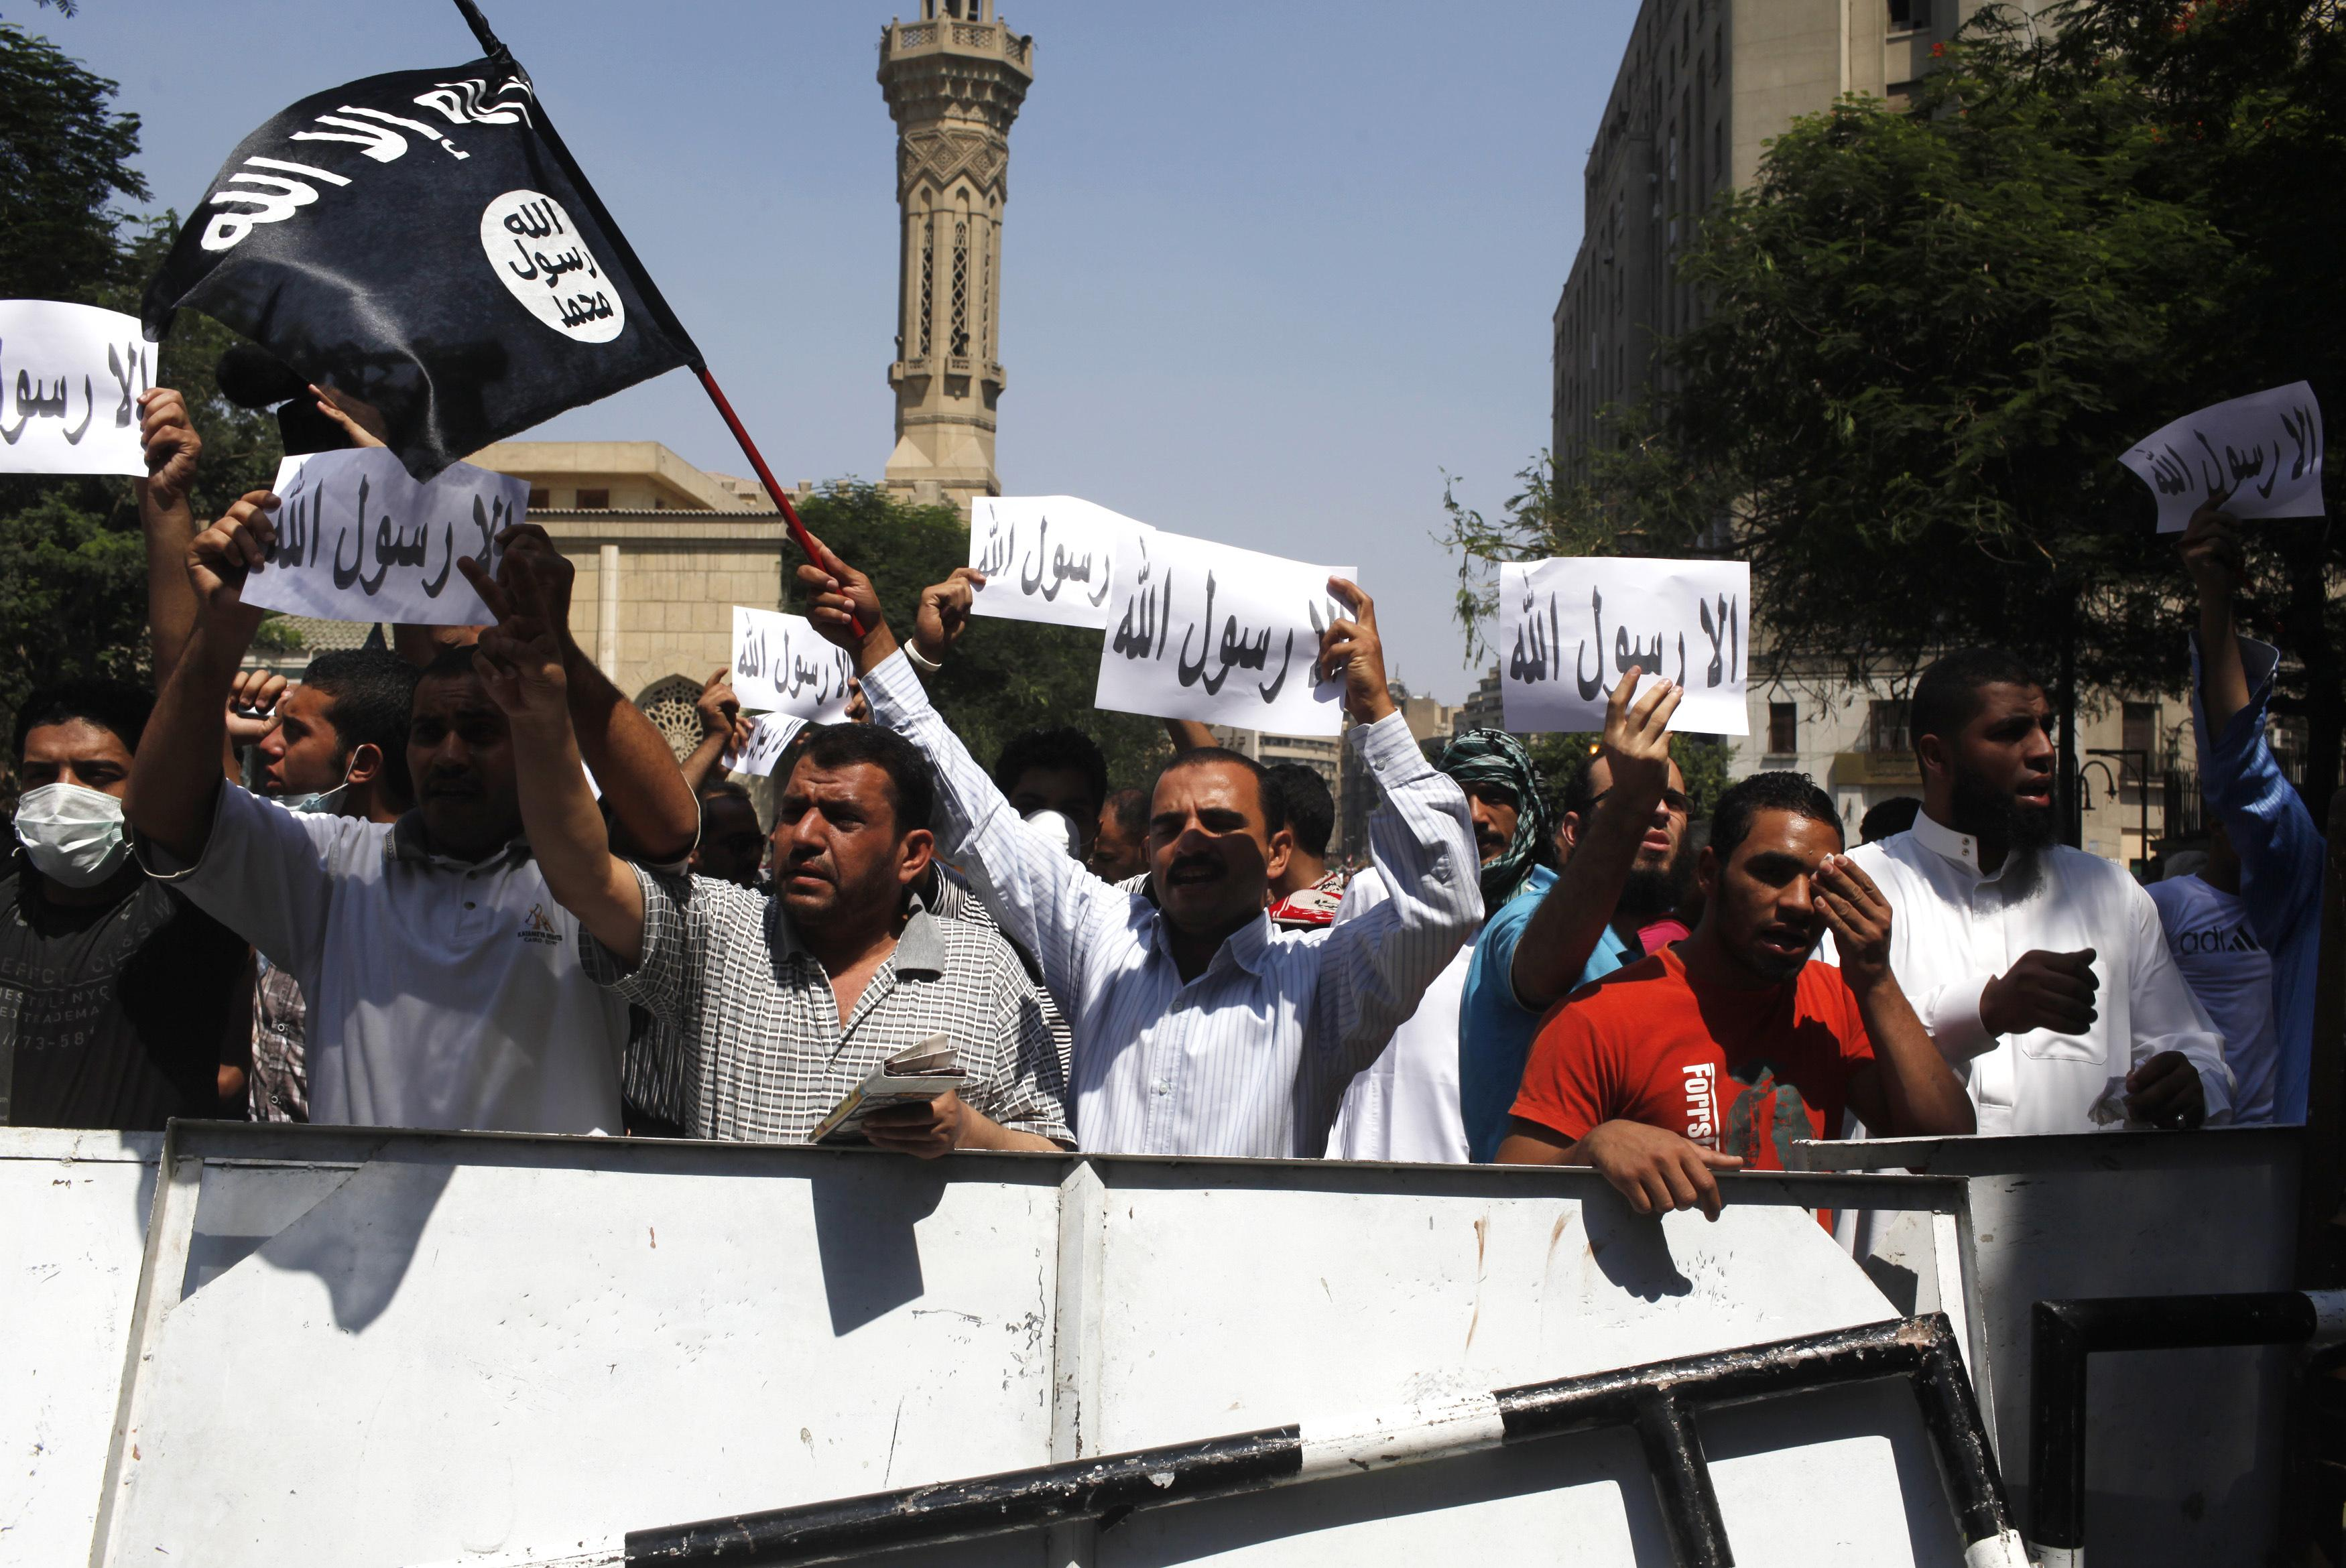 Egyptian Christians sentenced to death for Islam film